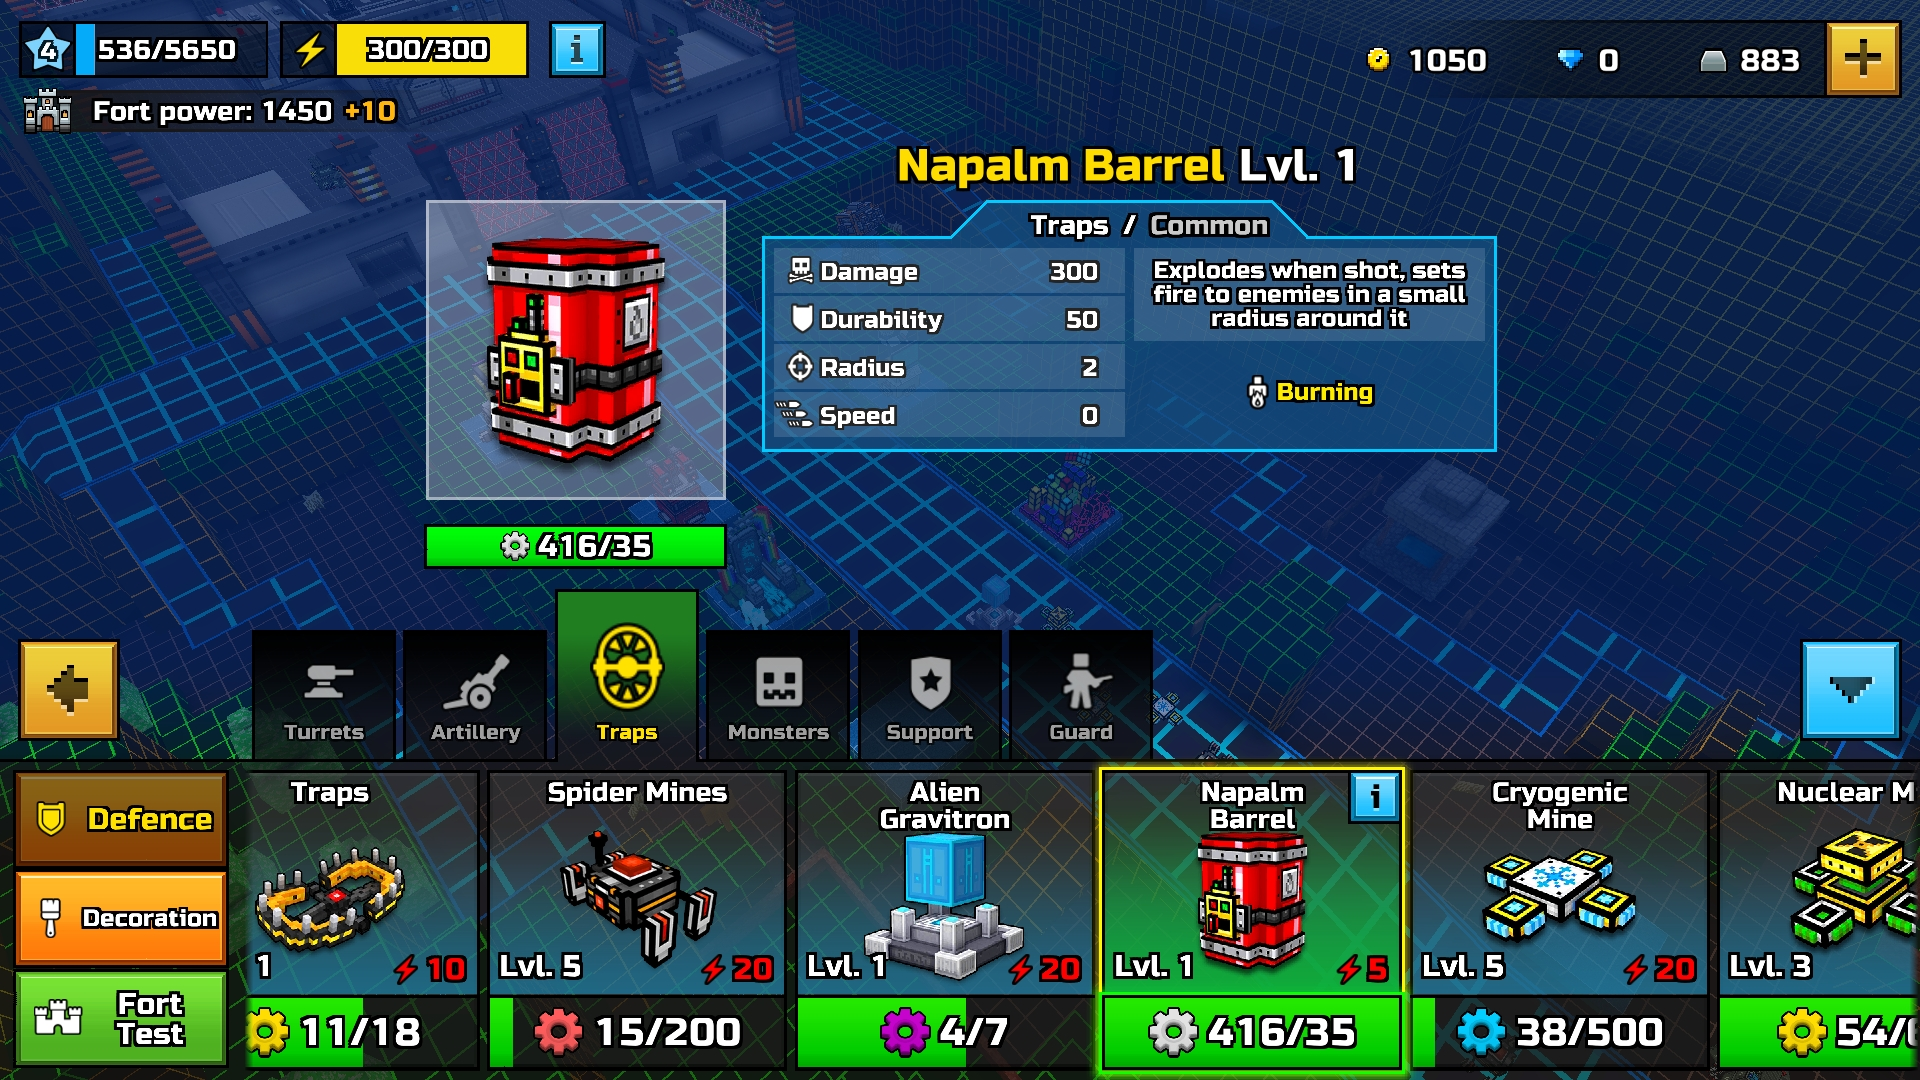 Napalm Barrel